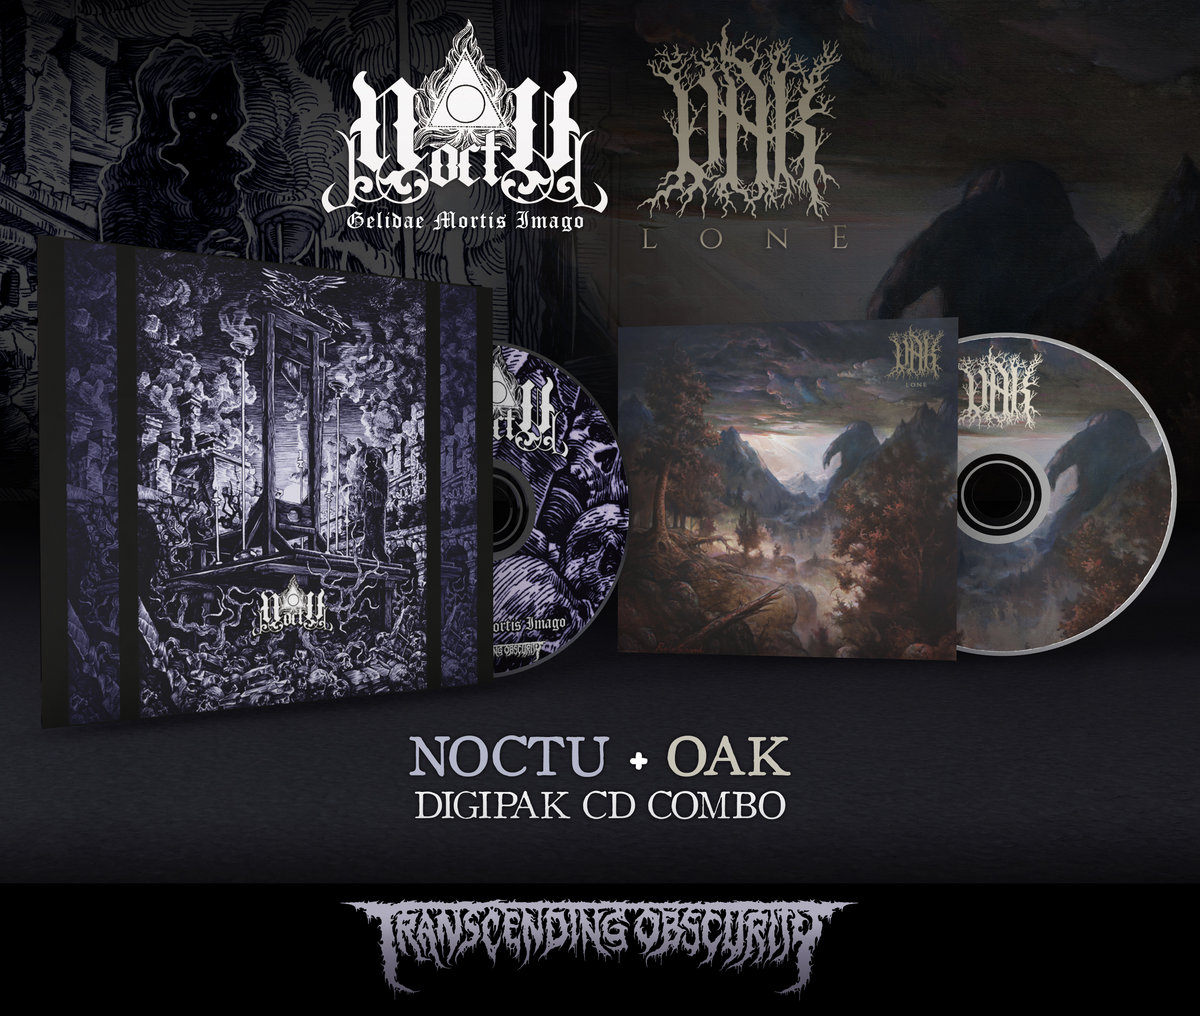 NOCTU + OAK 8-Panel Digipak CD Combo